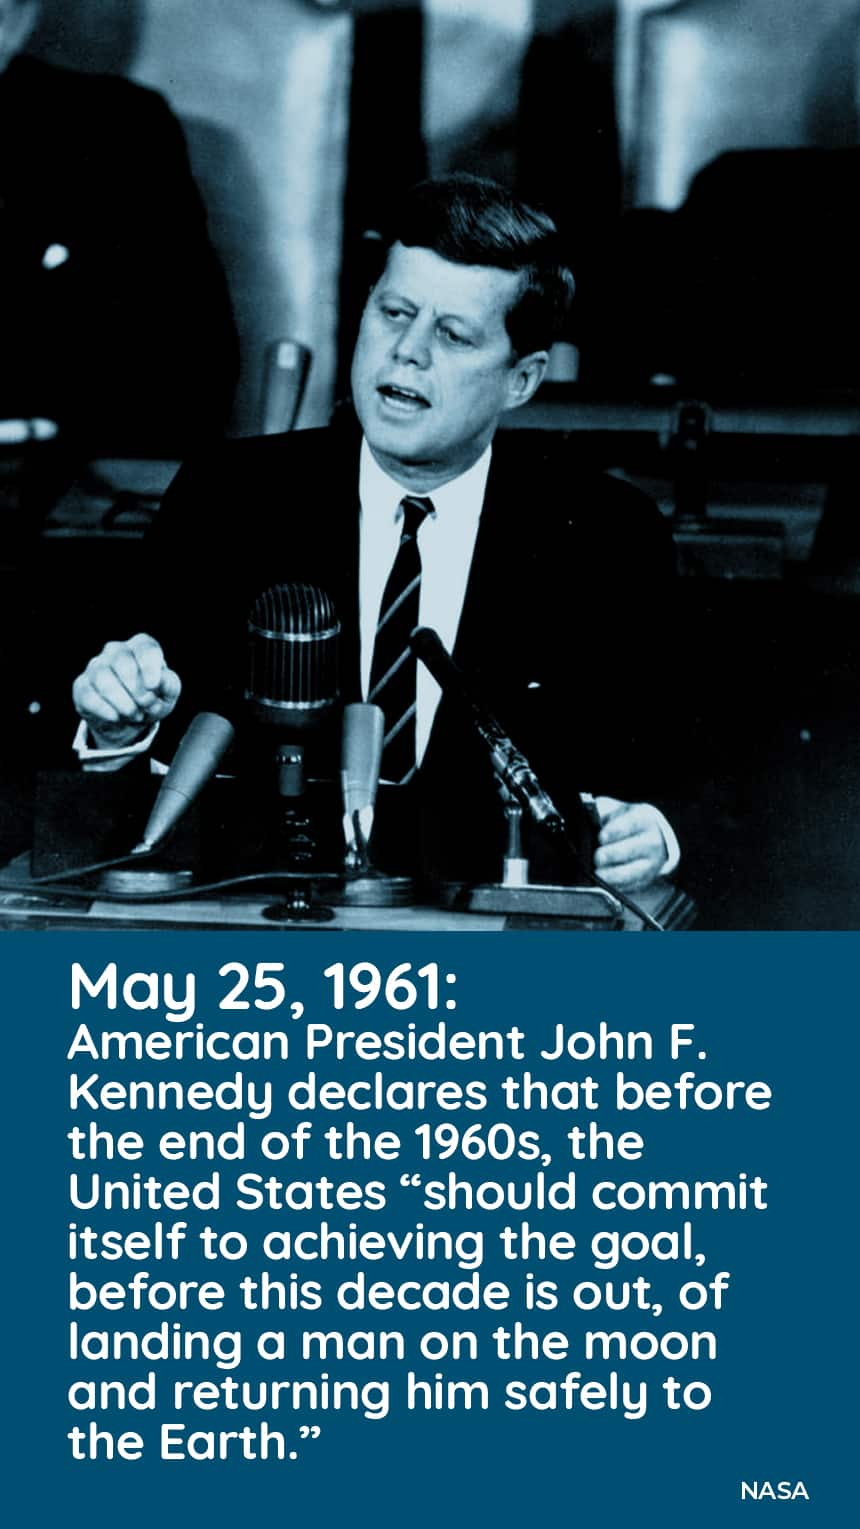 May 25, 1961: American President John F. Kennedy declares that before the end of the 1960's, the United States should commit itself to achieving the goal, before this decade is out,, of landing a man on the moon and returning him safely to the Earth.